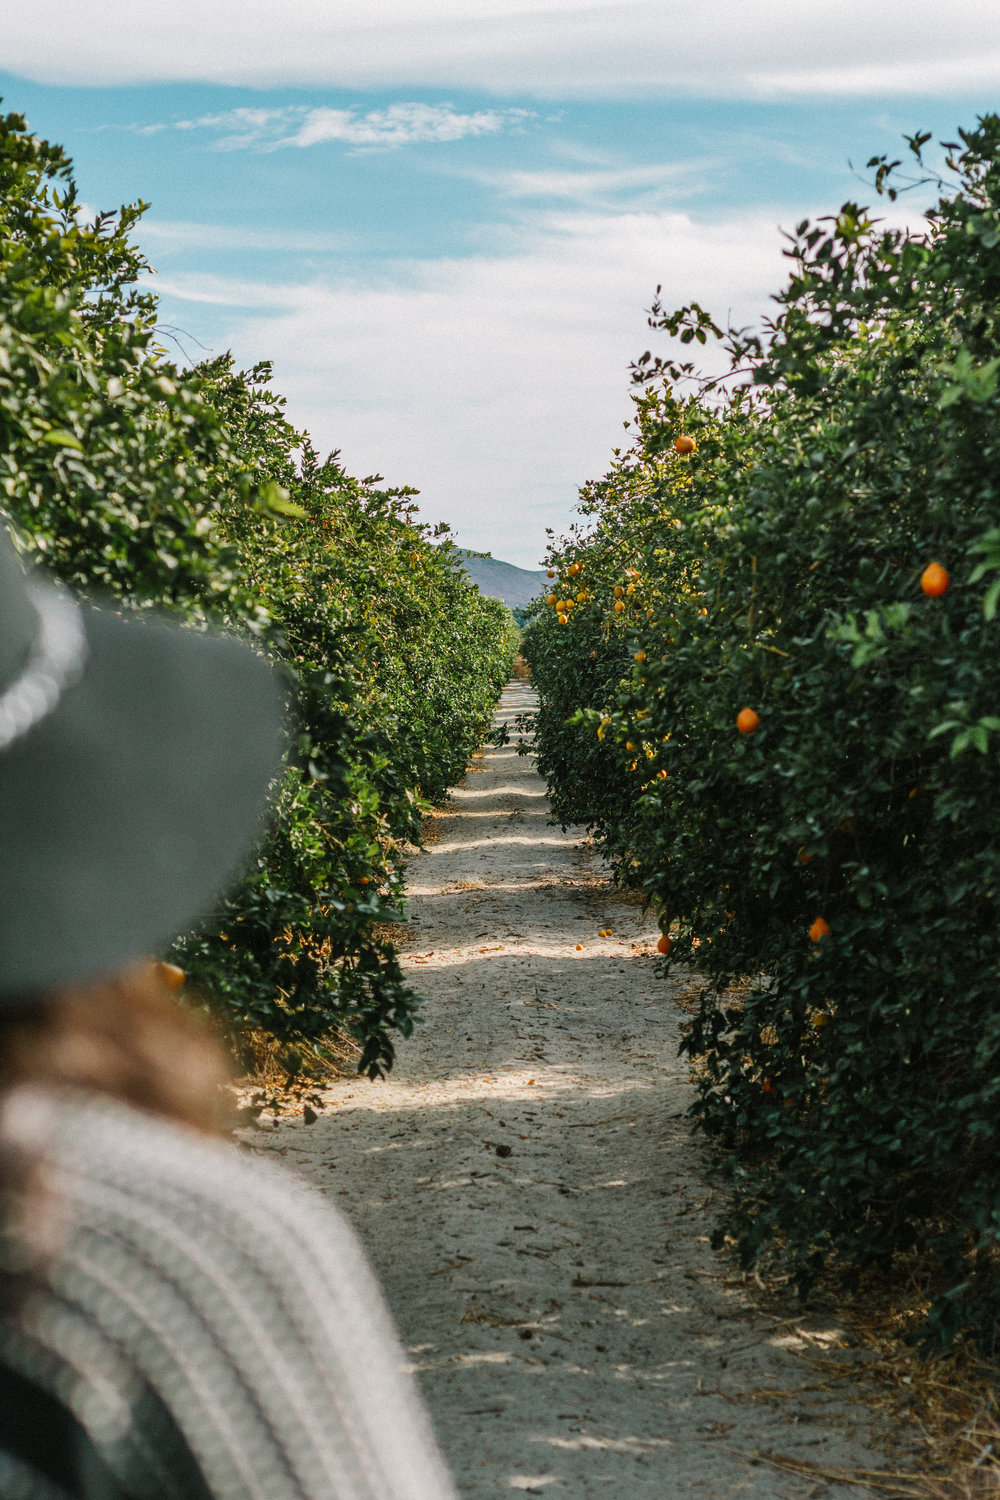 borrego springs orange orchard 2